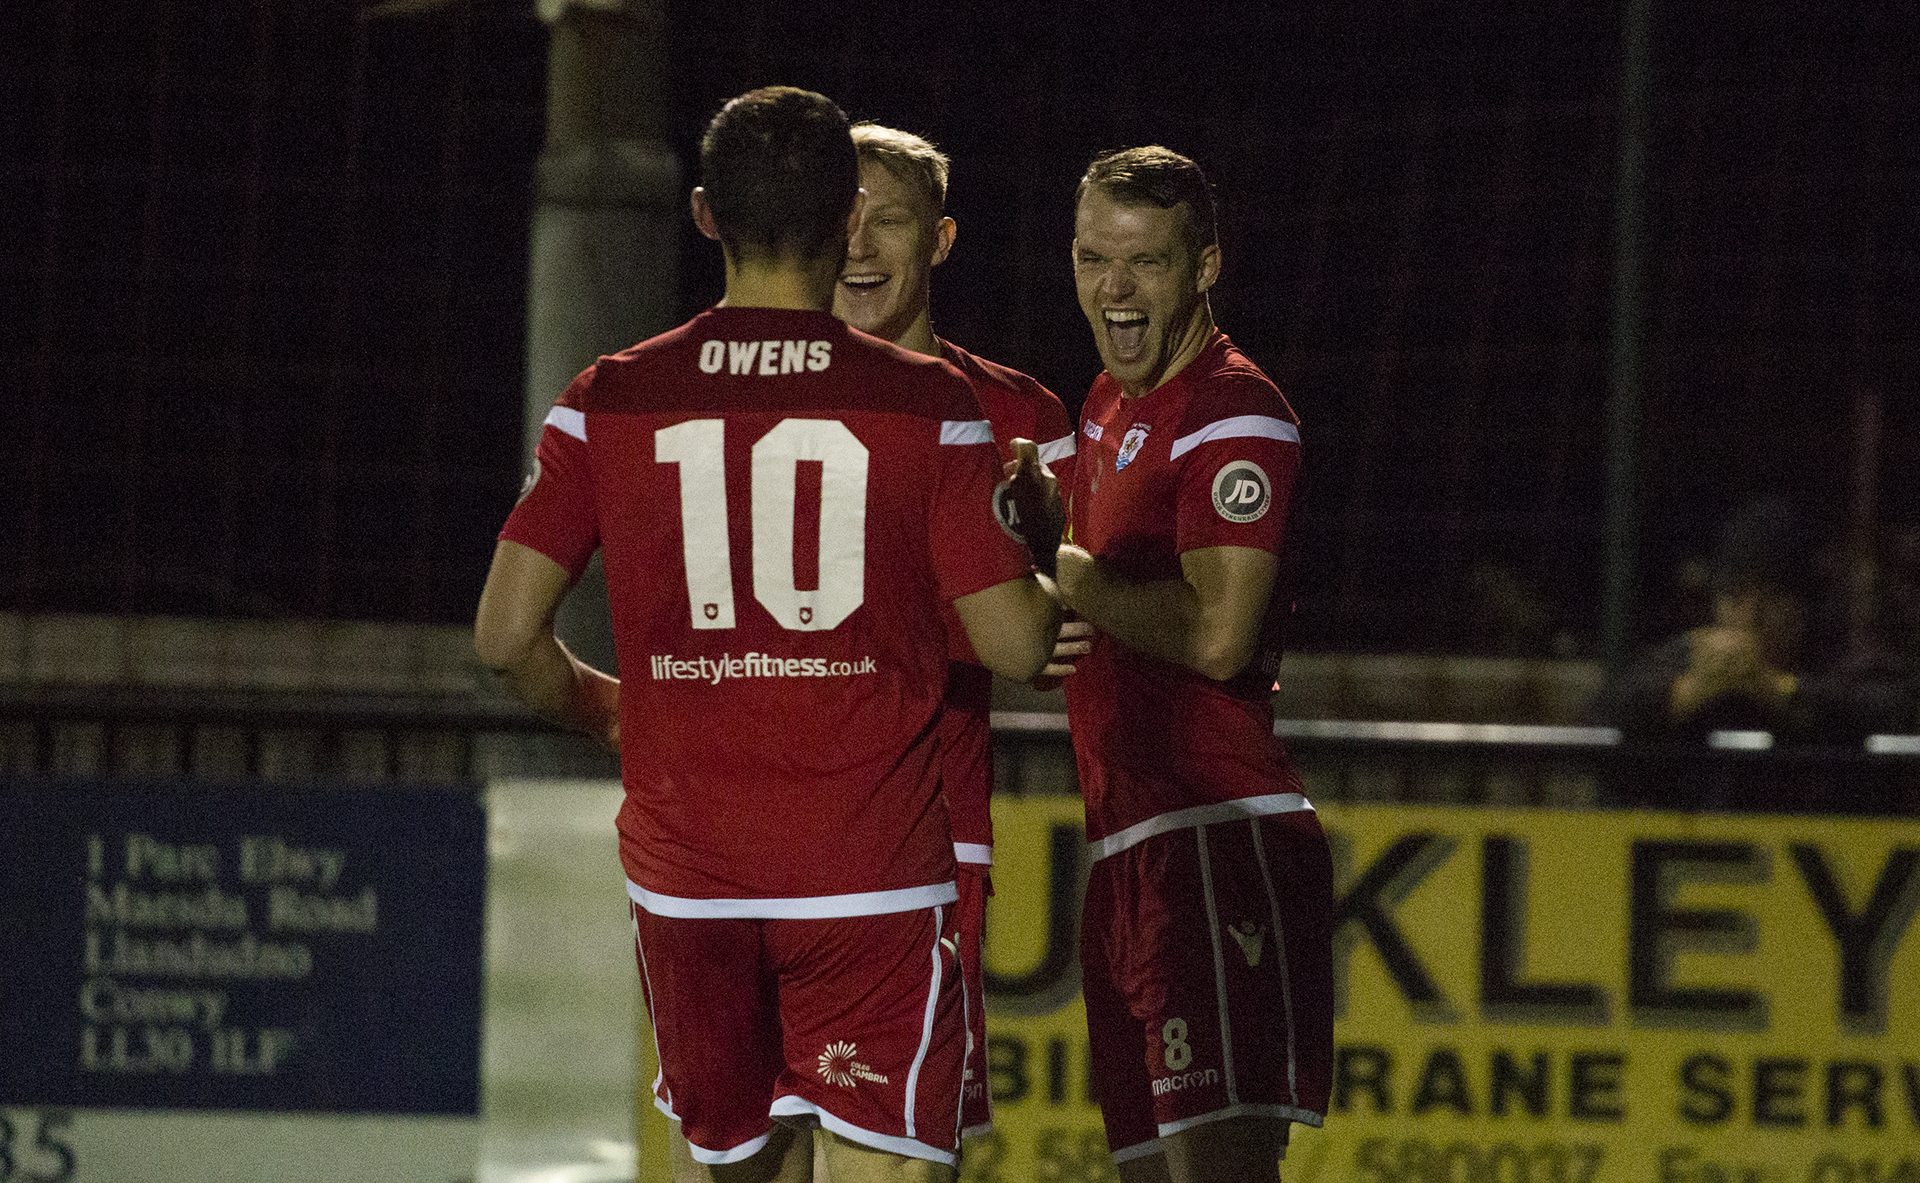 Callum Morris was the star of the show as his hat trick gave The Nomads a 4-0 victory © NCM Media